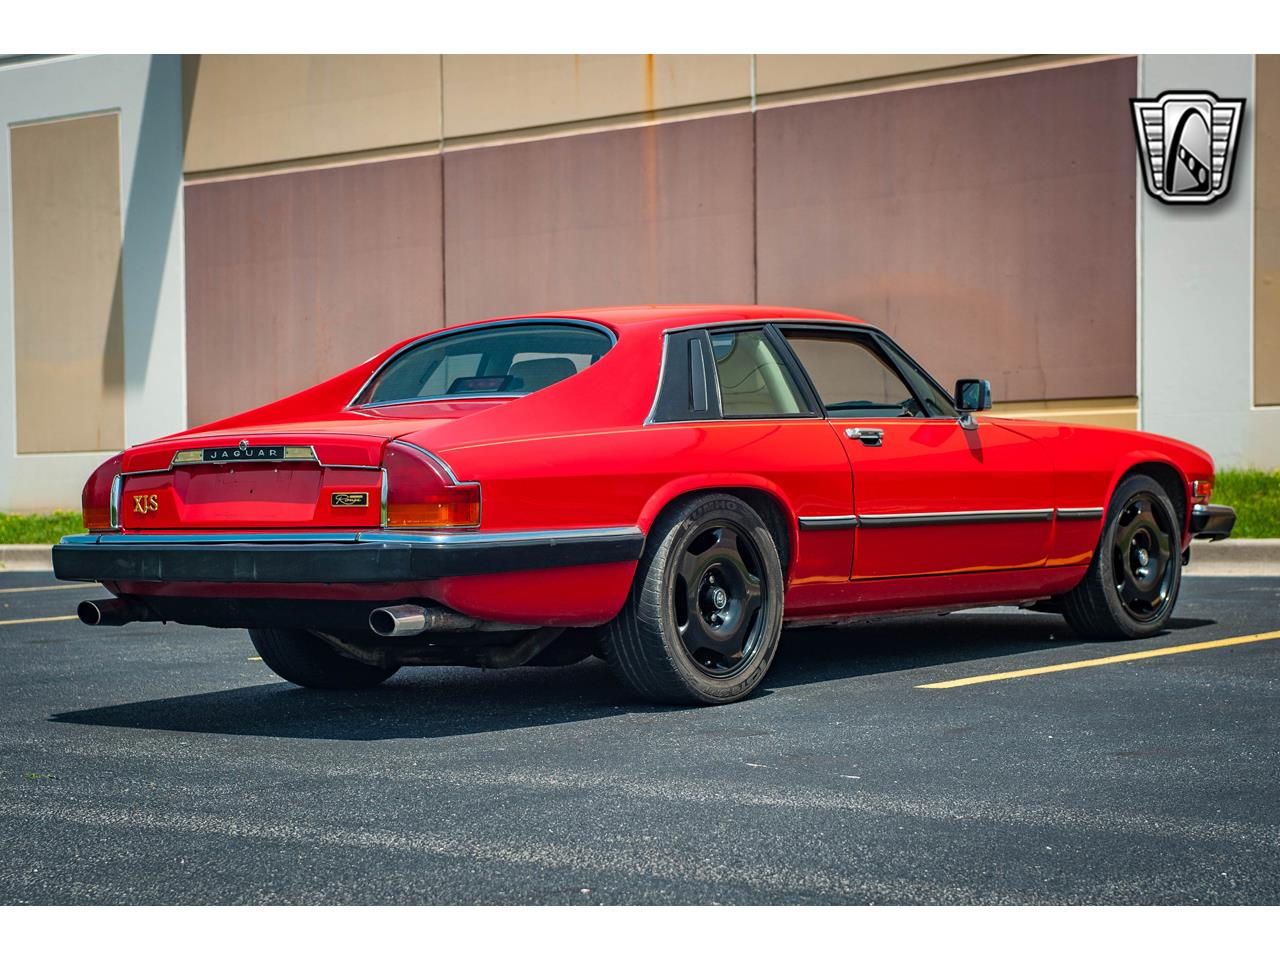 Large Picture of '89 XJS located in O'Fallon Illinois Offered by Gateway Classic Cars - St. Louis - QB9L